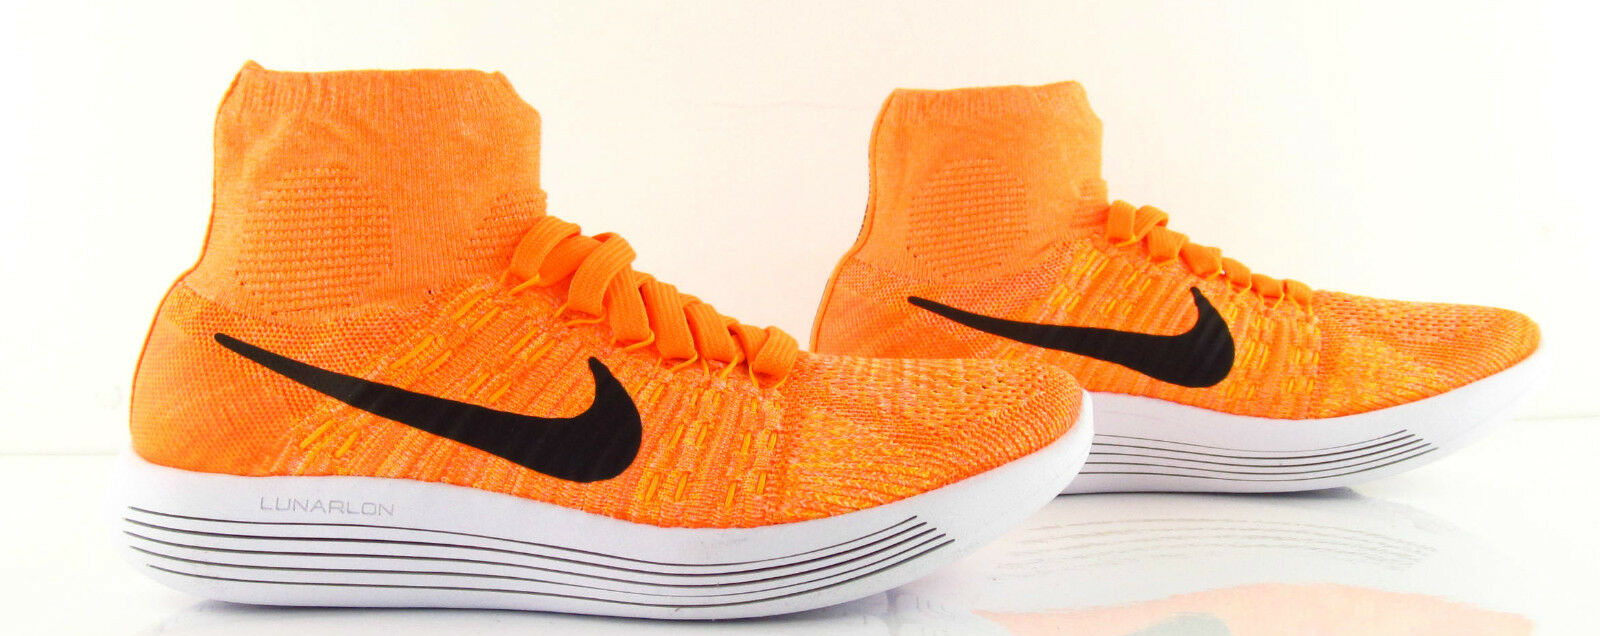 Nike Wmns Lunarepic Flyknit Laser Total orange Running New US_7.5 UK_5 Eur 38.5